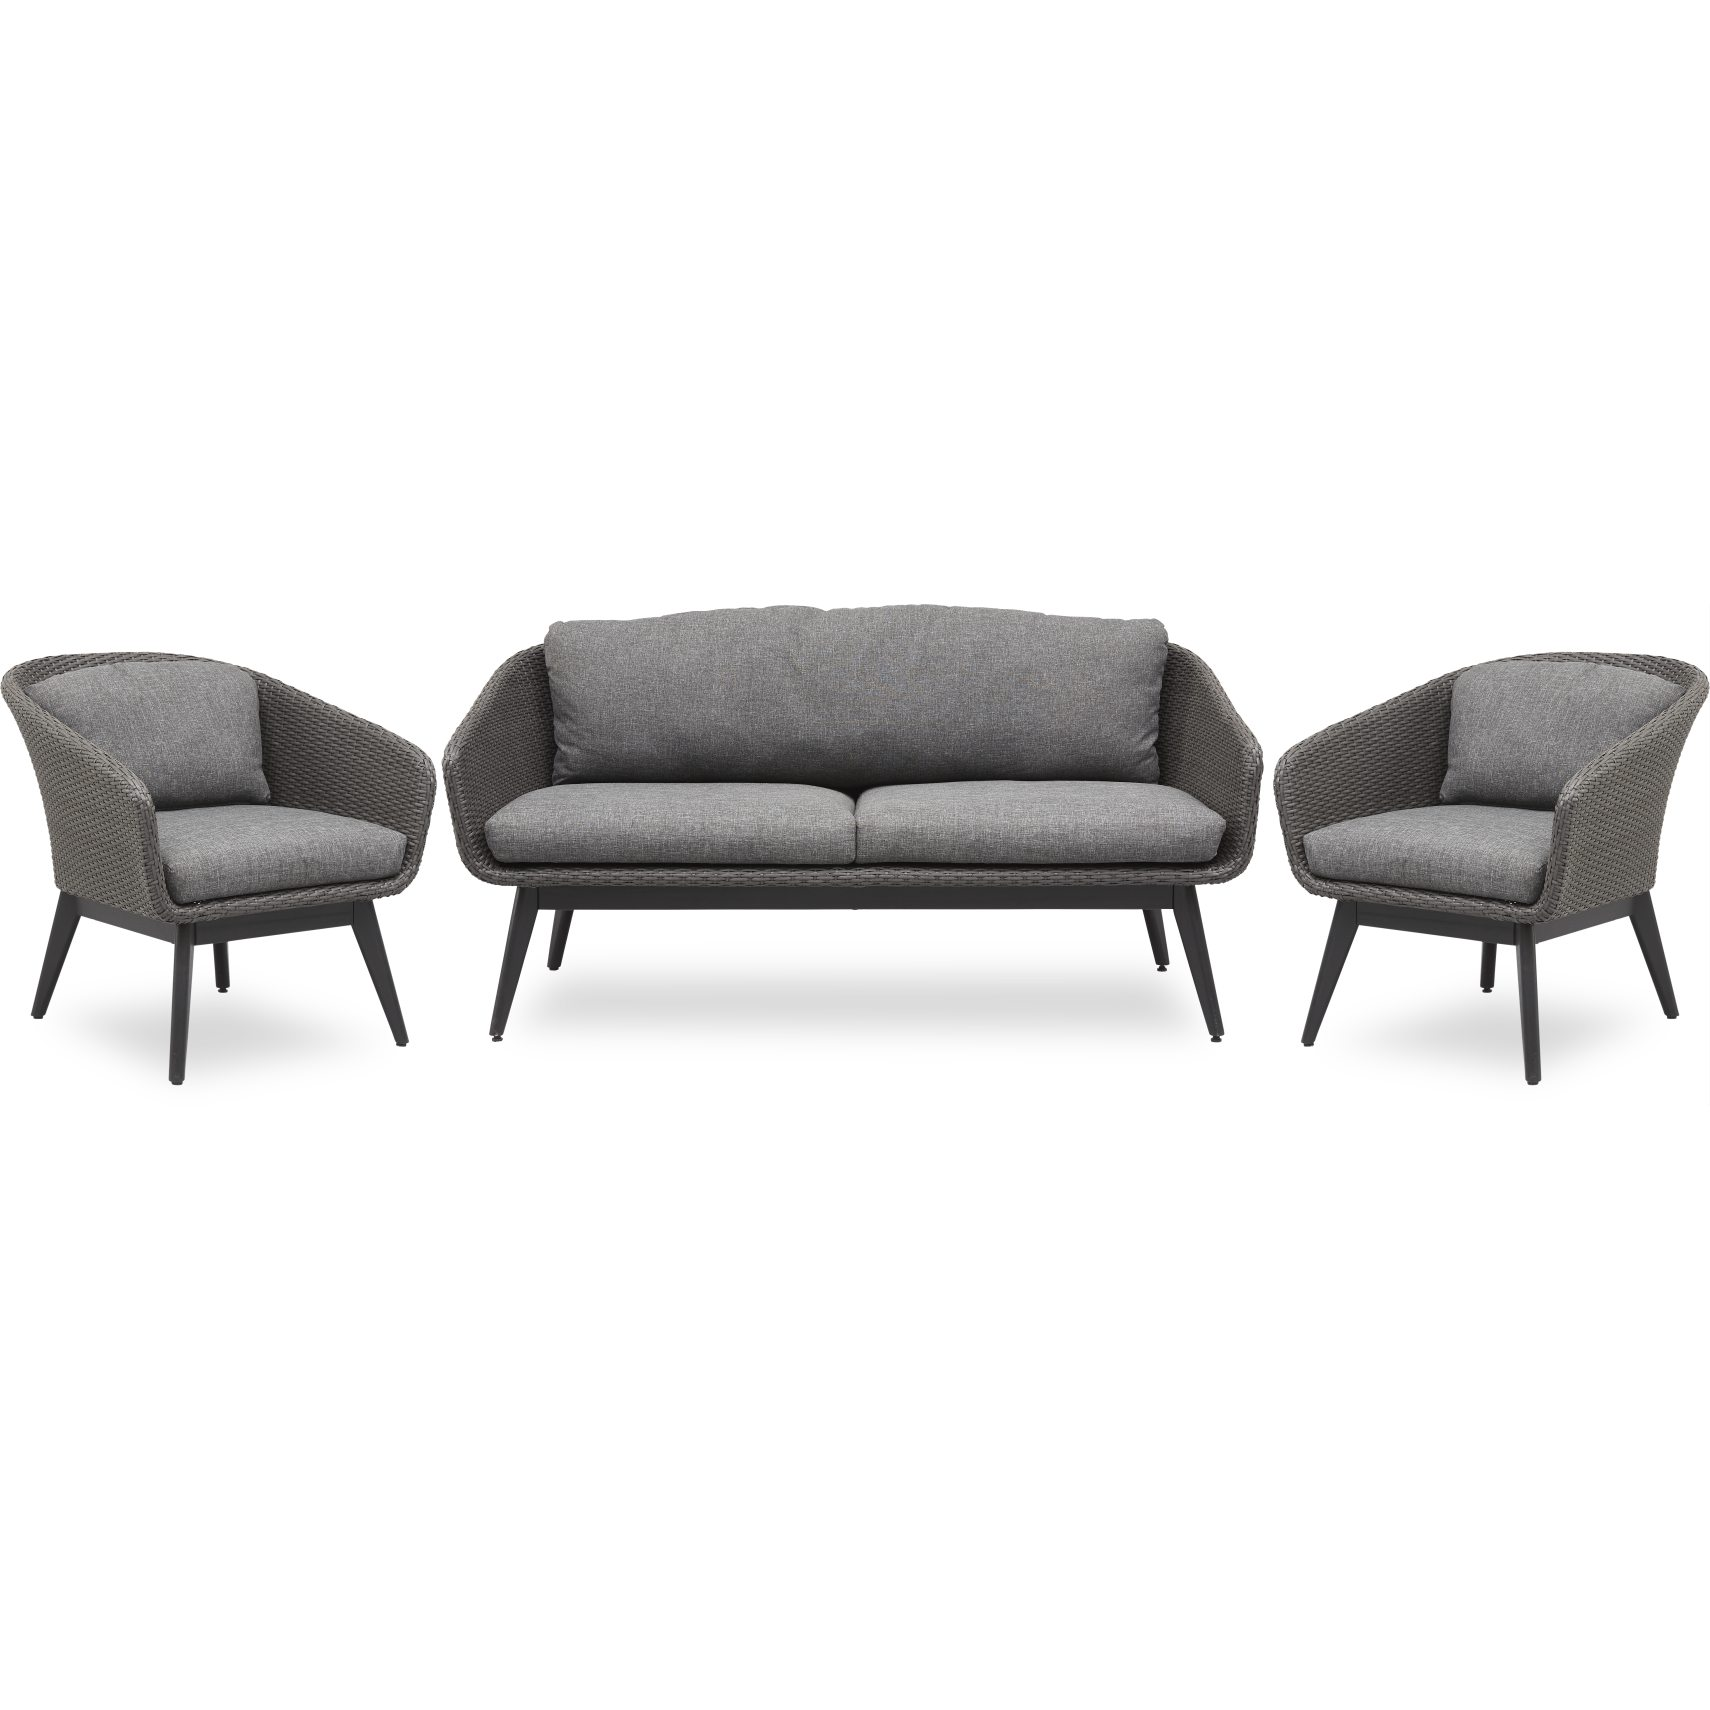 Bellevue Loungesofa